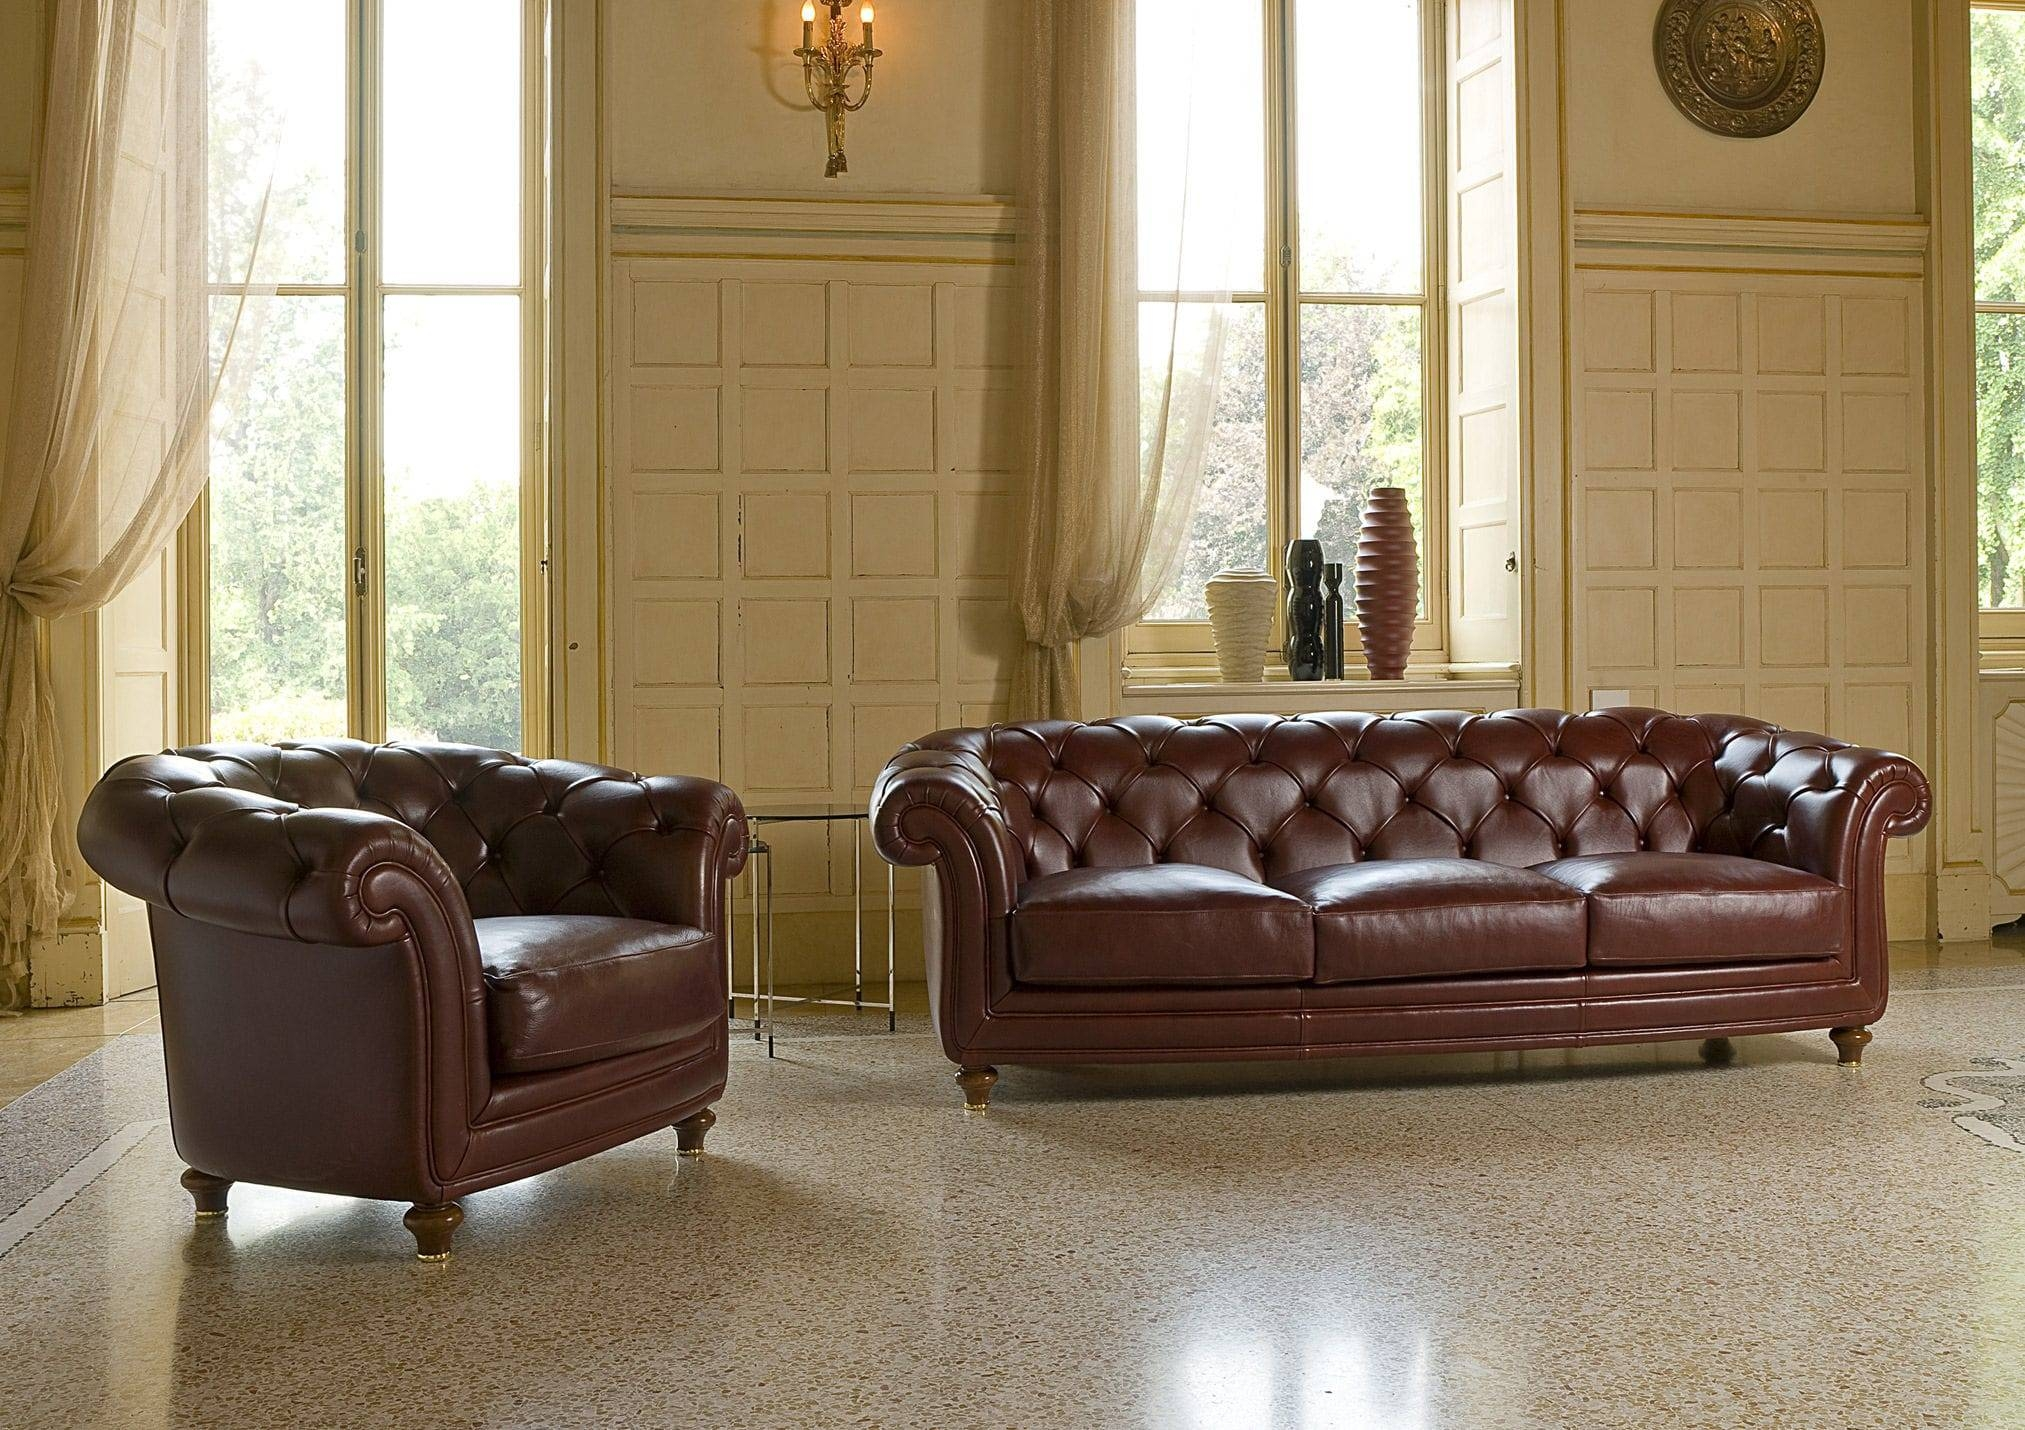 Chesterfield Sofa / Leather / Fabric / 3-Seater - Oxford - Berto in Oxford Sofas (Image 6 of 30)